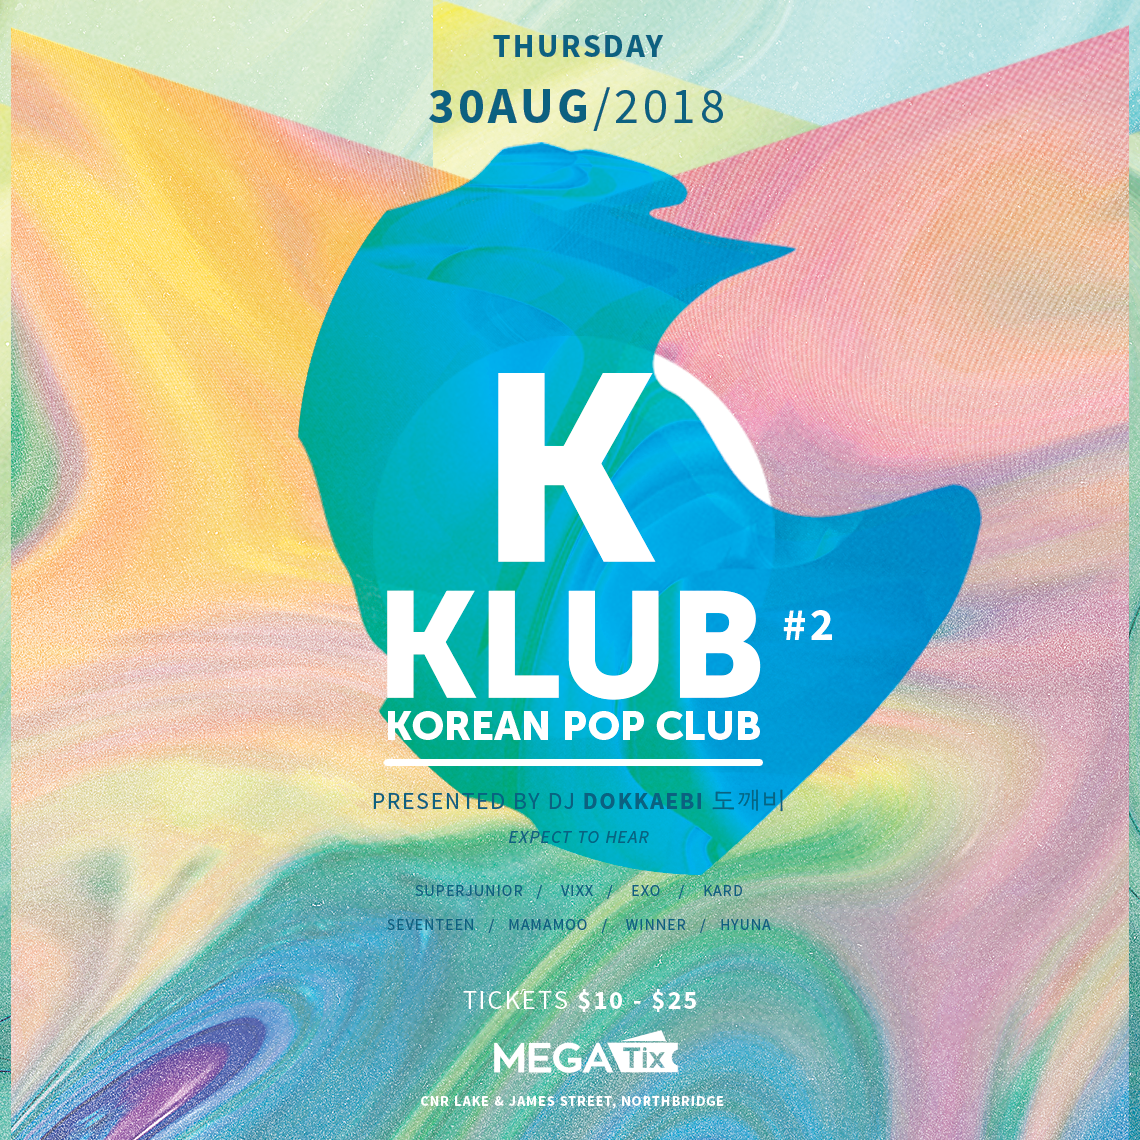 K KLUB #2 - Korean Pop Klub